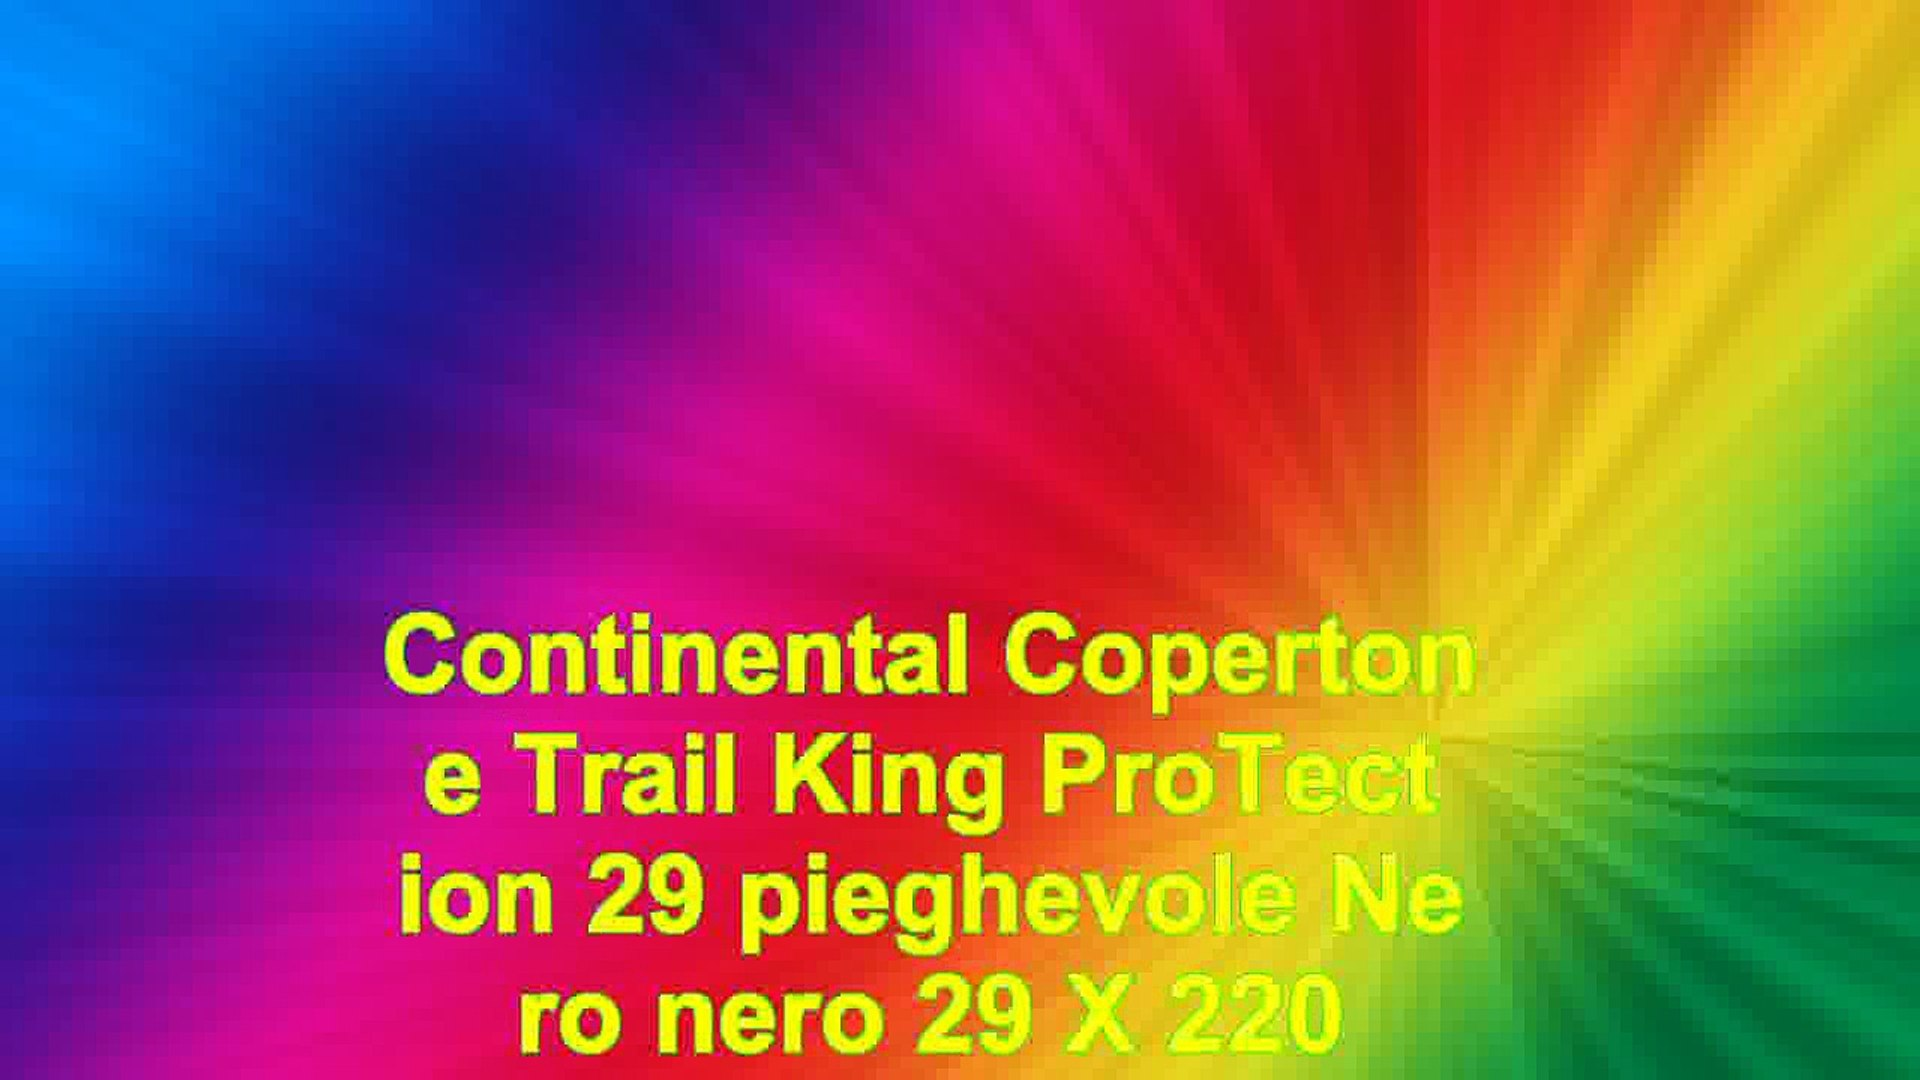 Continental  Copertone Trail King ProTection 29 pieghevole Nero nero 29 X 220